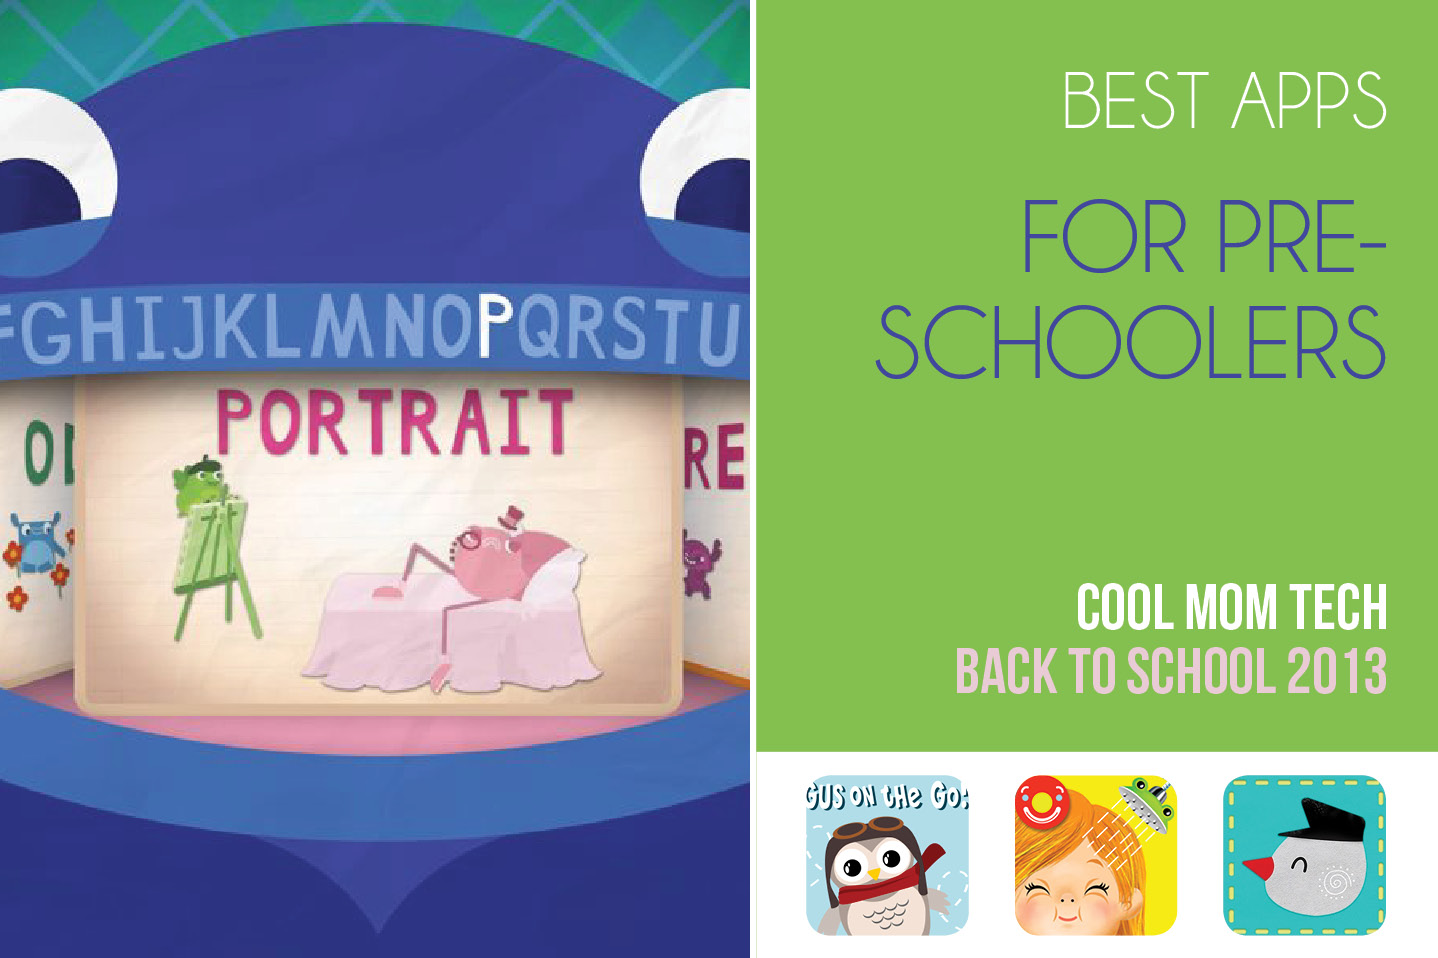 The best preschool apps: Back to School Tech Guide 2013